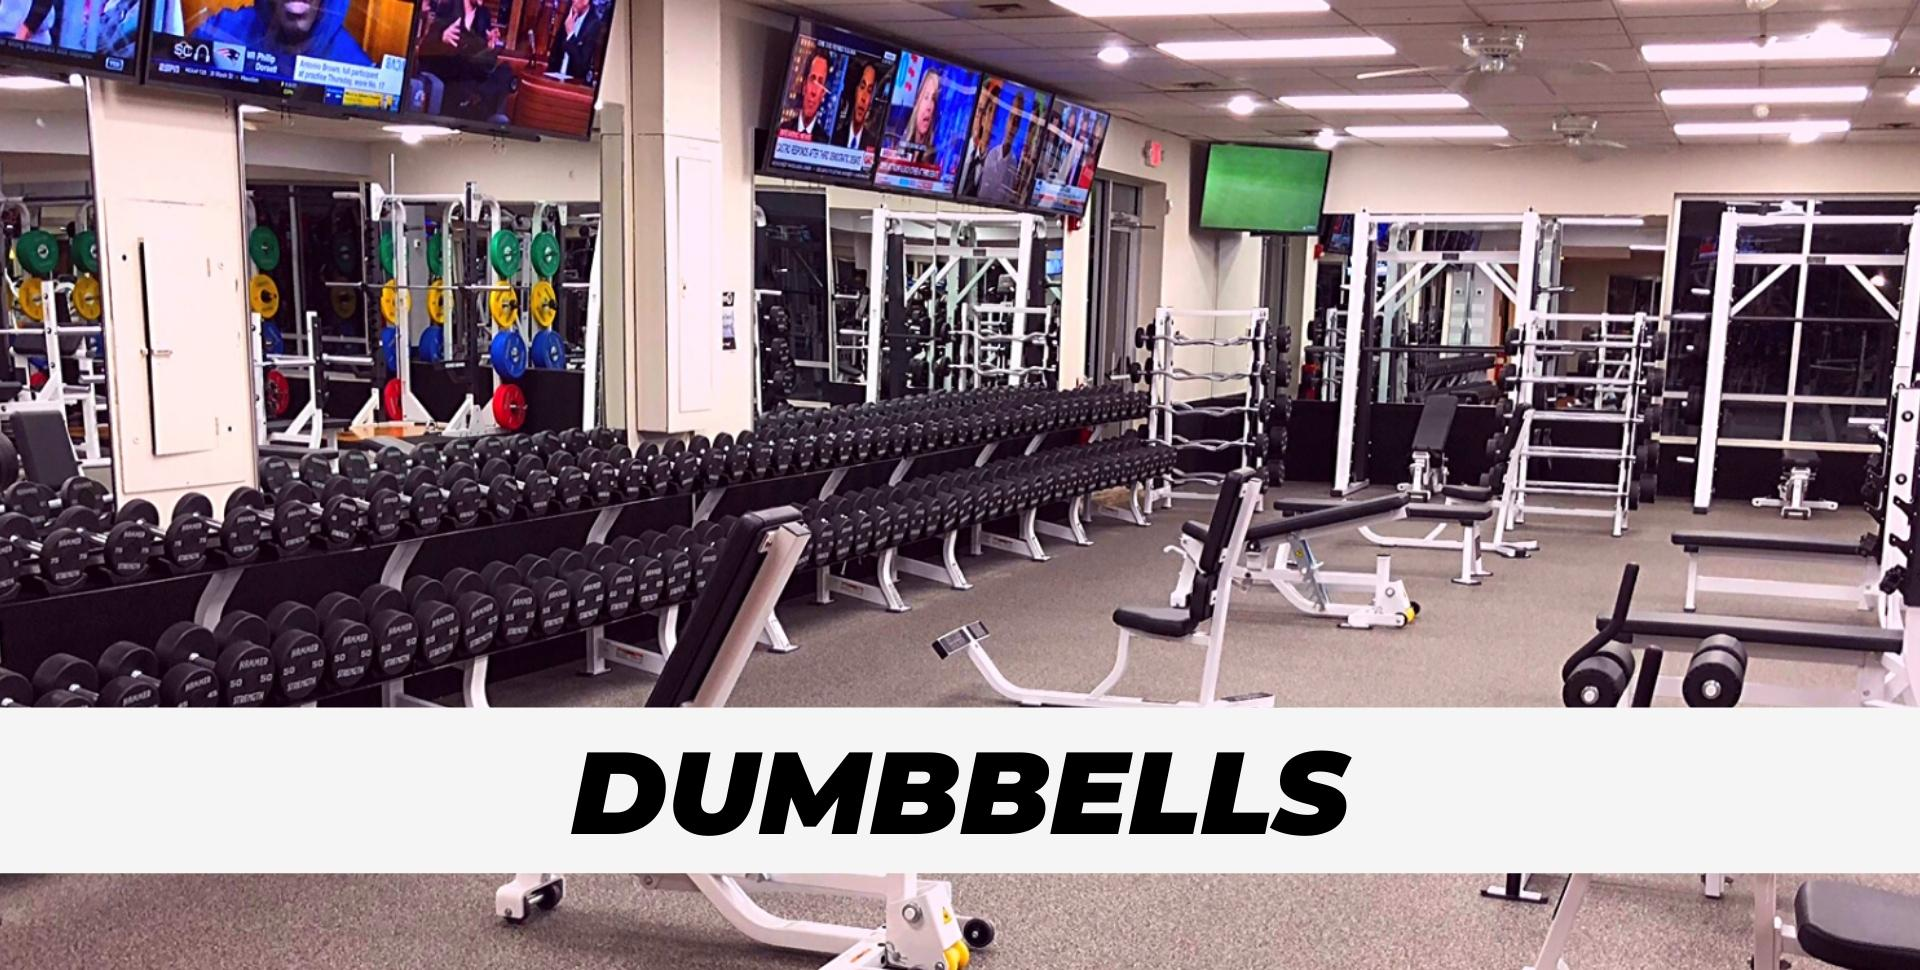 Dumbbell free weights at gym for Portfolio Pic